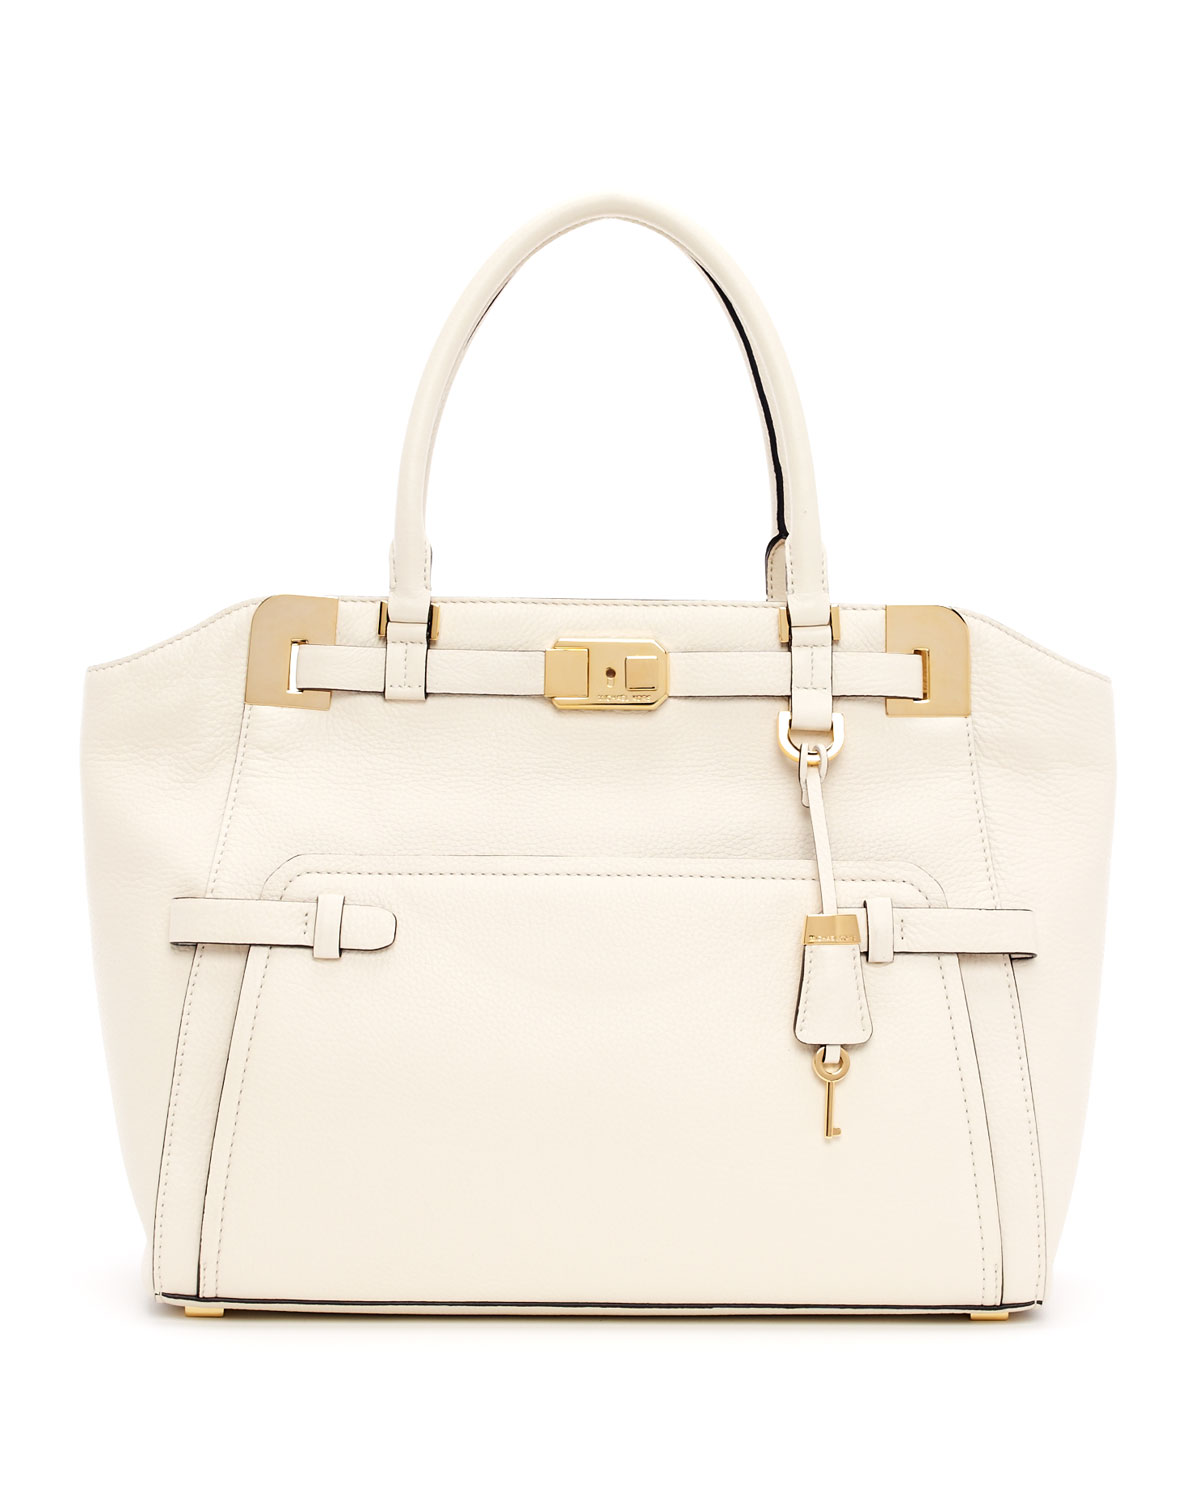 lyst michael kors blake large pebbled leather satchel bag in natural rh lyst com